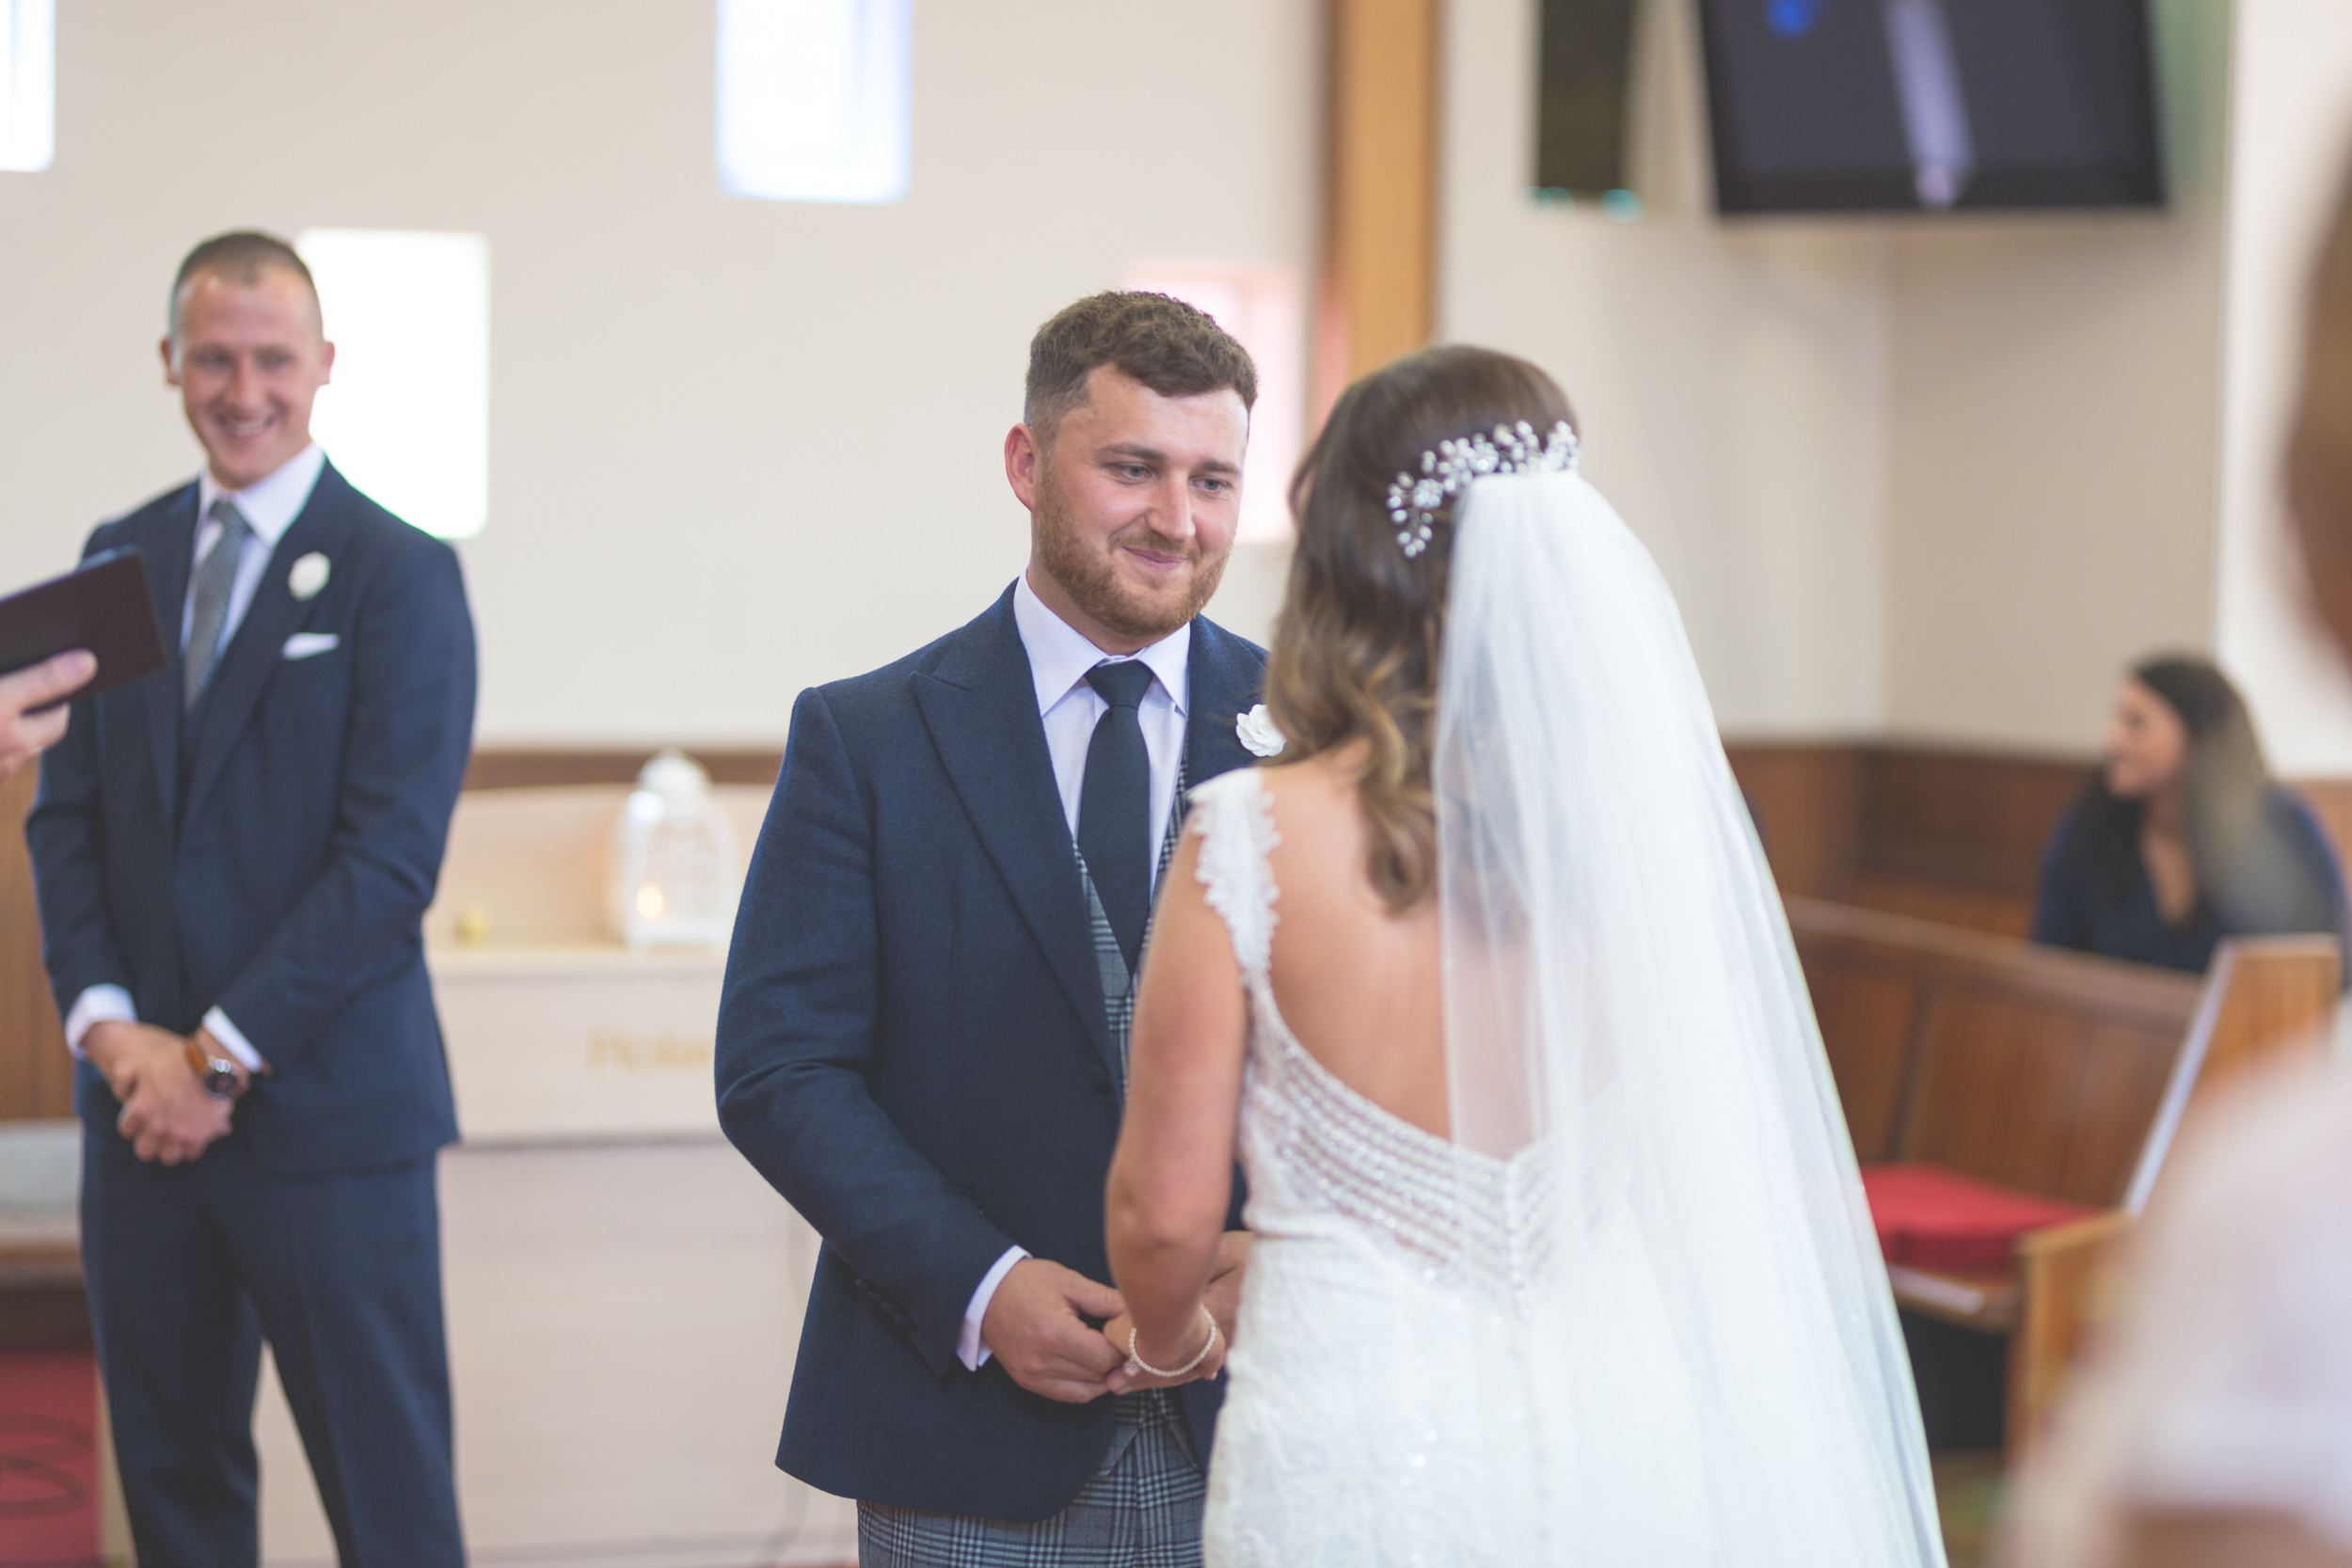 Brian McEwan | Northern Ireland Wedding Photographer | Rebecca & Michael | Ceremony-62.jpg